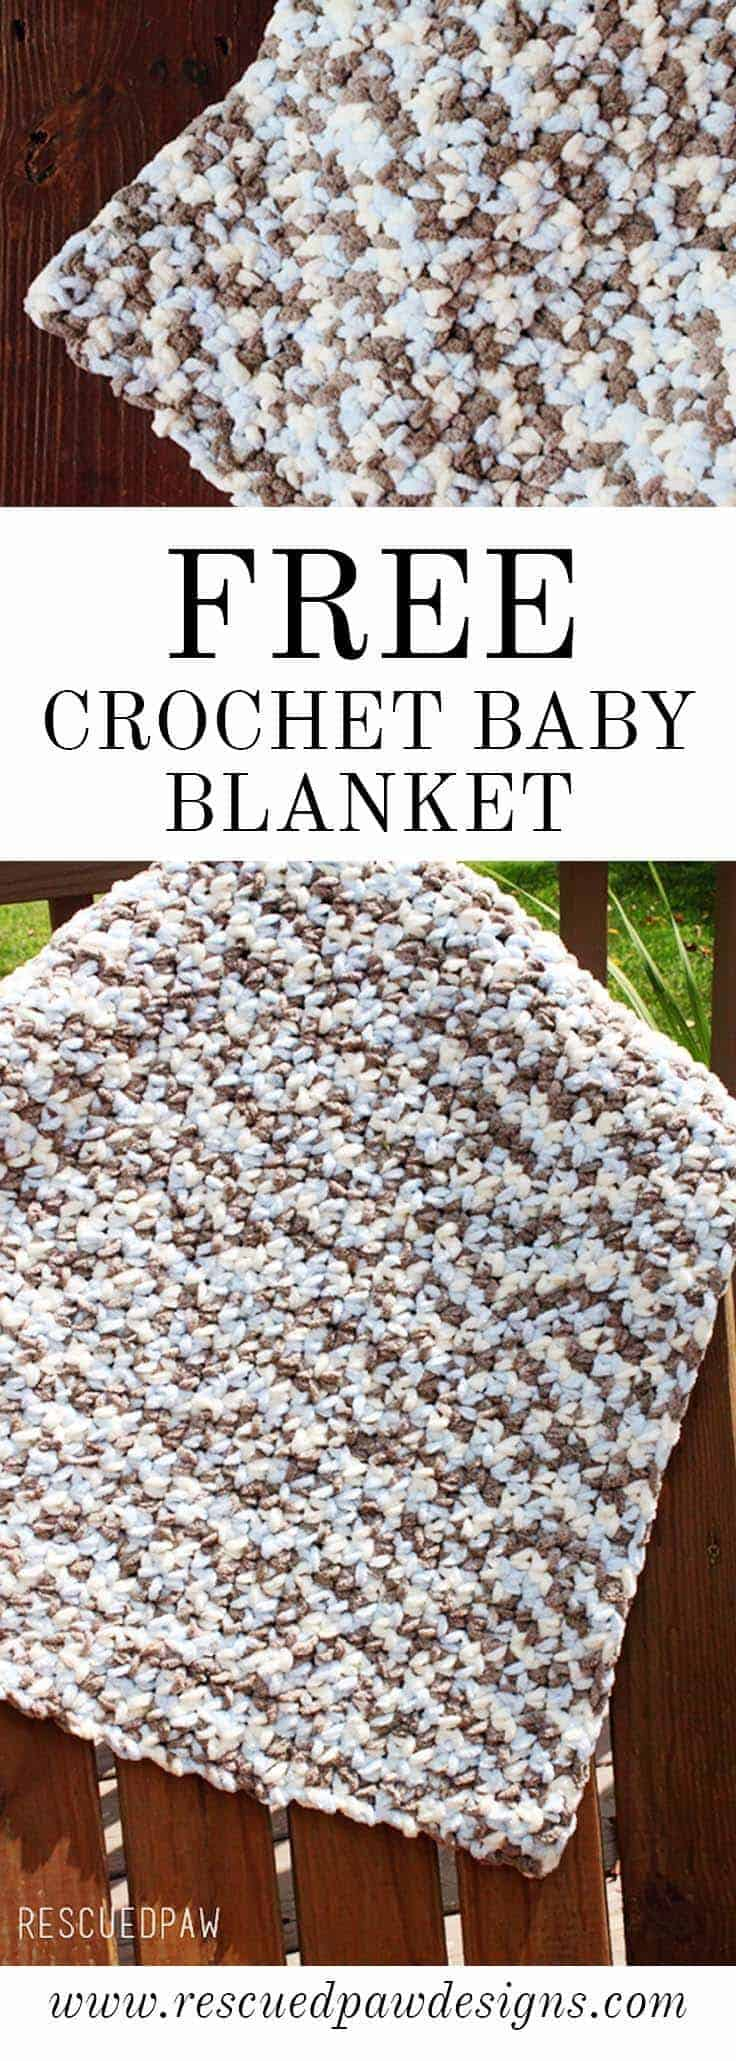 Easy Beginner-Friendly Crochet Baby Blanket Pattern